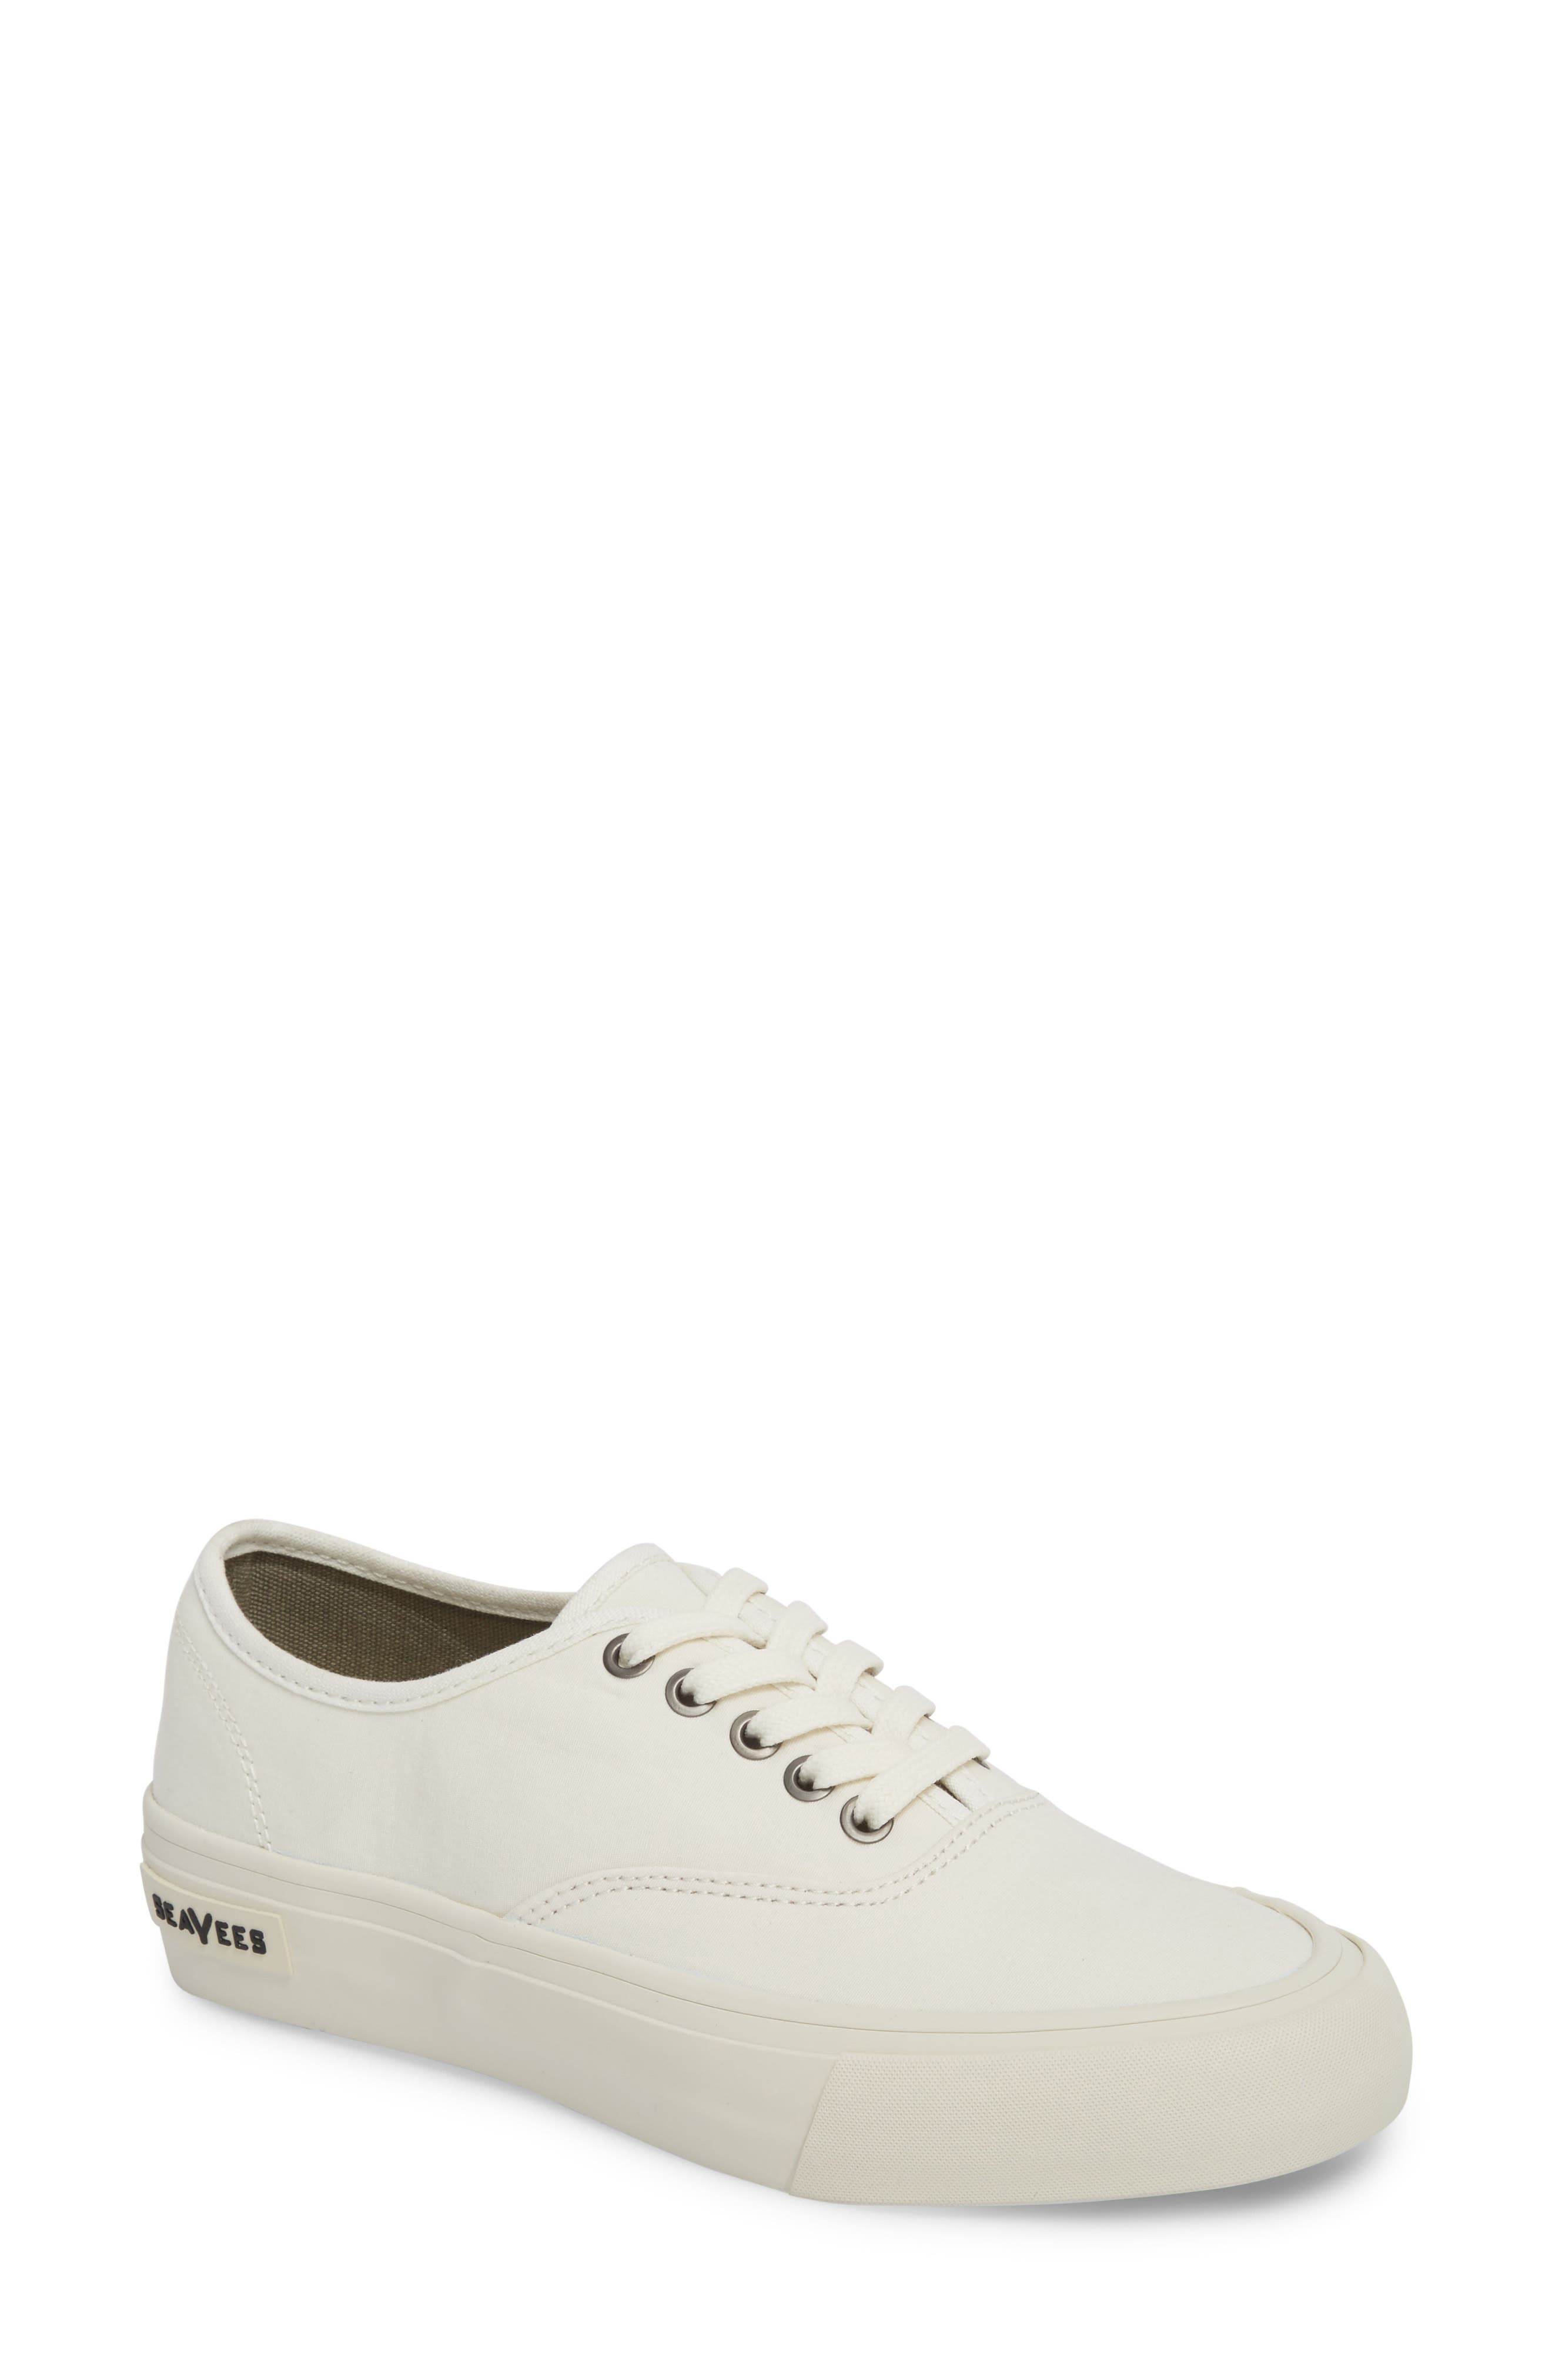 Legend Standard Sneaker,                         Main,                         color, BLEACH